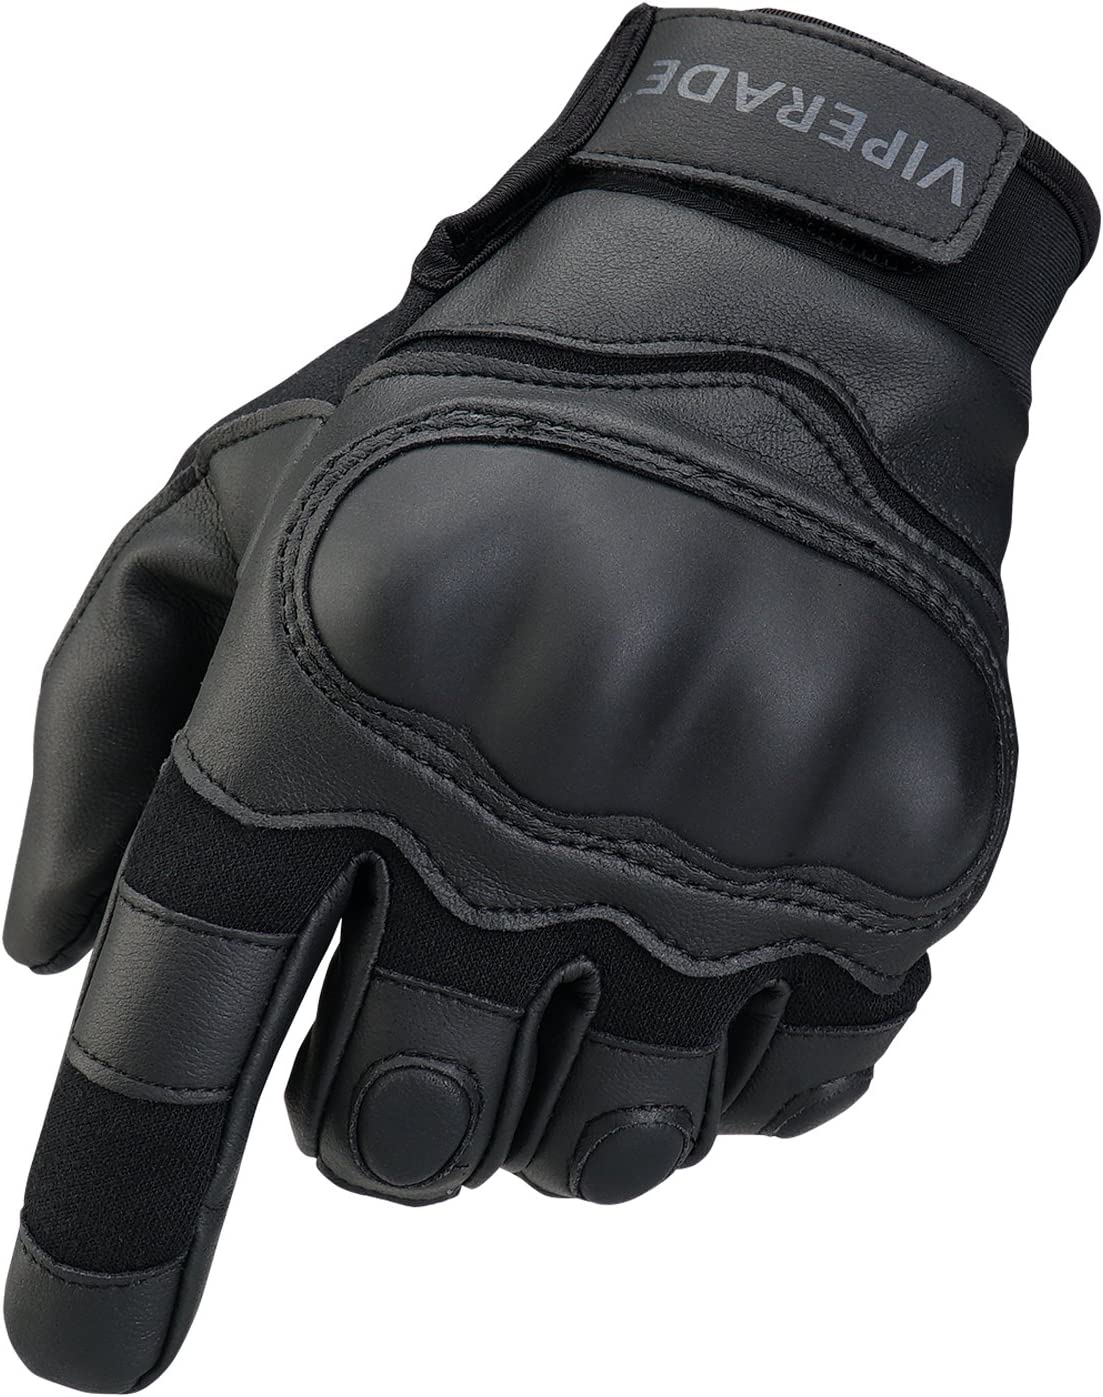 Viperade Mens Tactical Gloves Military Rubber Outdo Hard Knuckle 2021 autumn and winter new New products world's highest quality popular